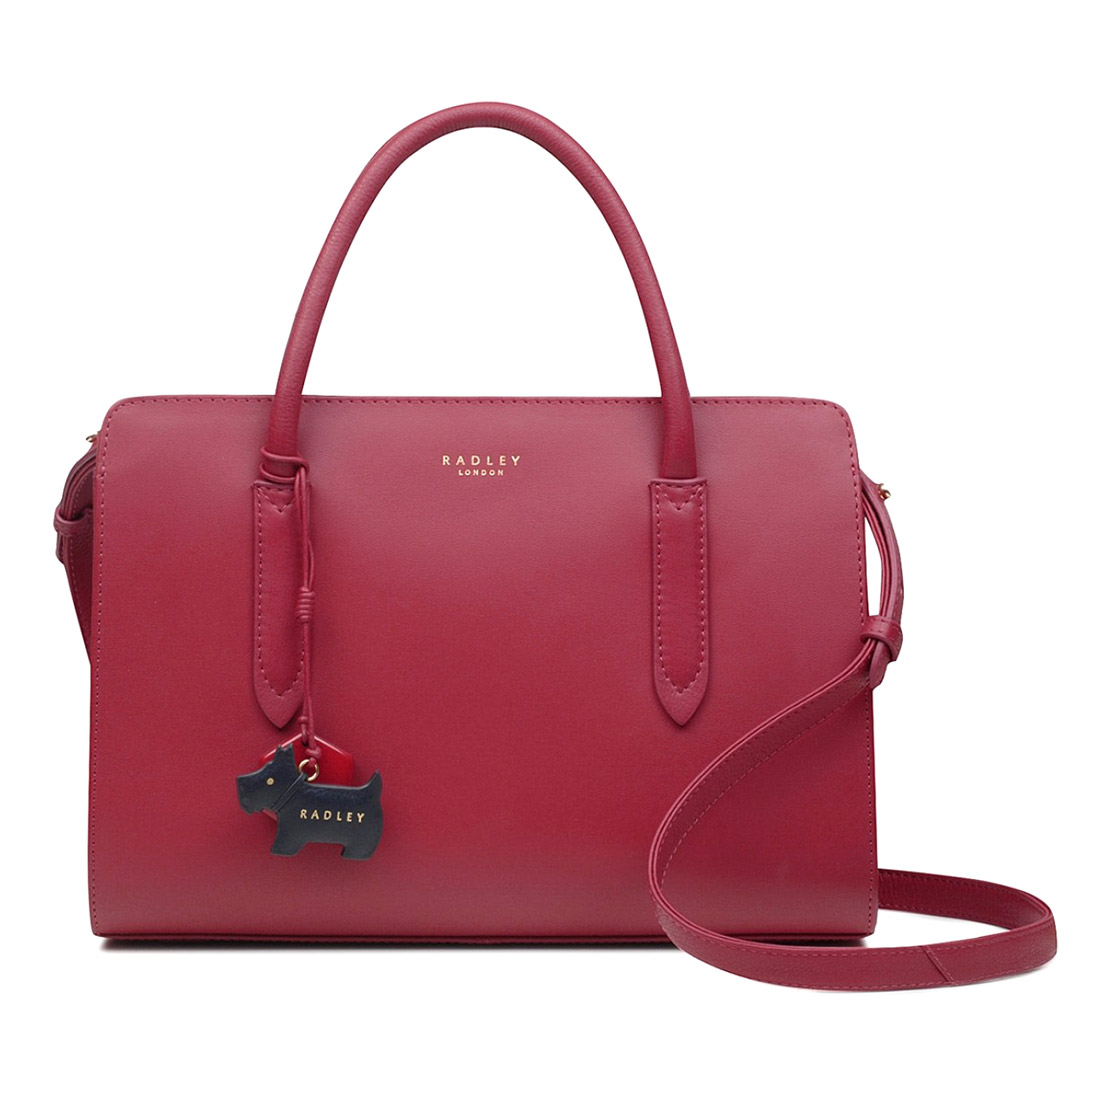 Radley Shoulder Handbag